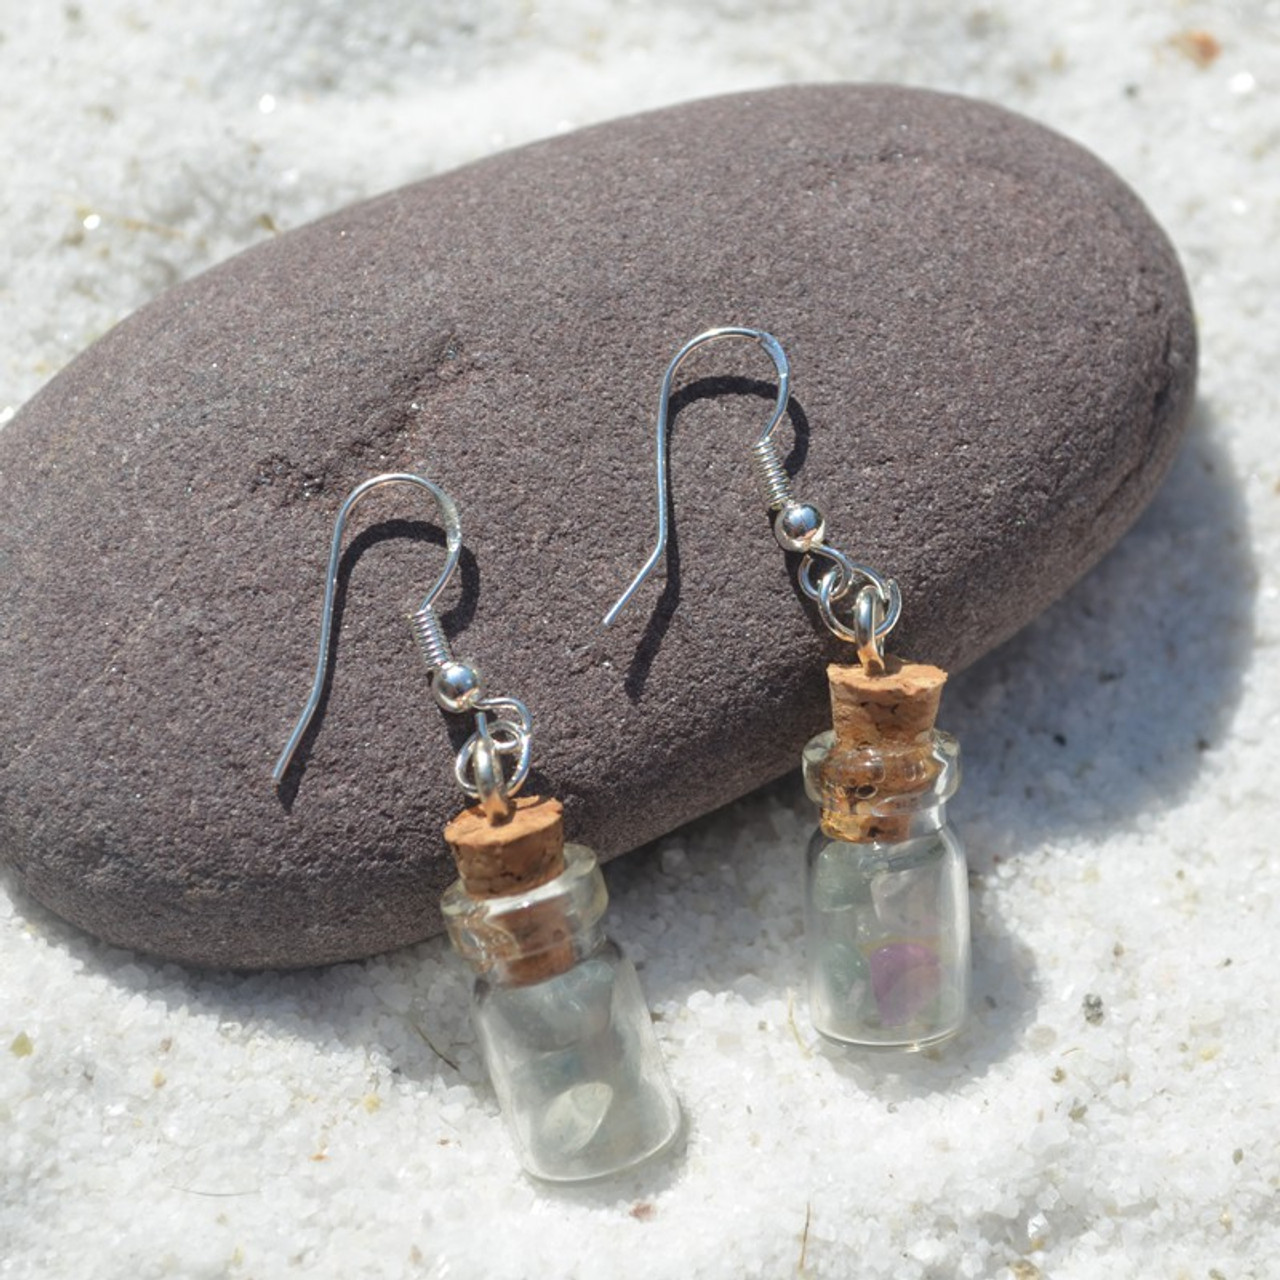 Fluorite Stones in Delicate Glass Vial Earrings - Made to Order